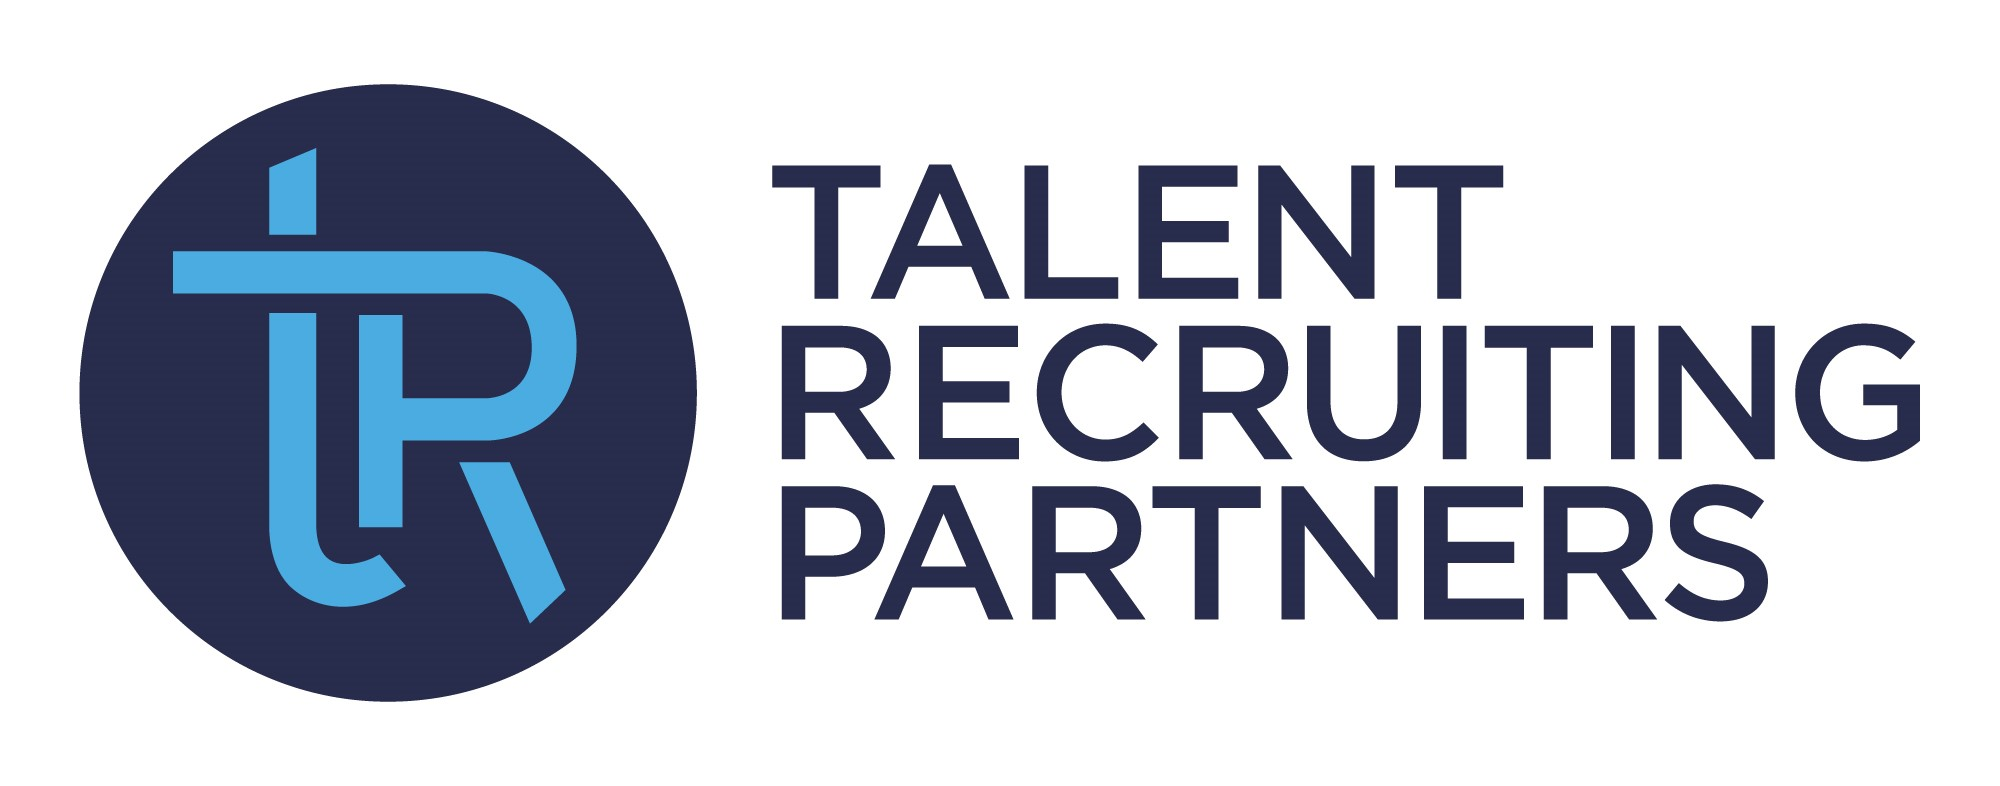 Talent Recruiting Partners